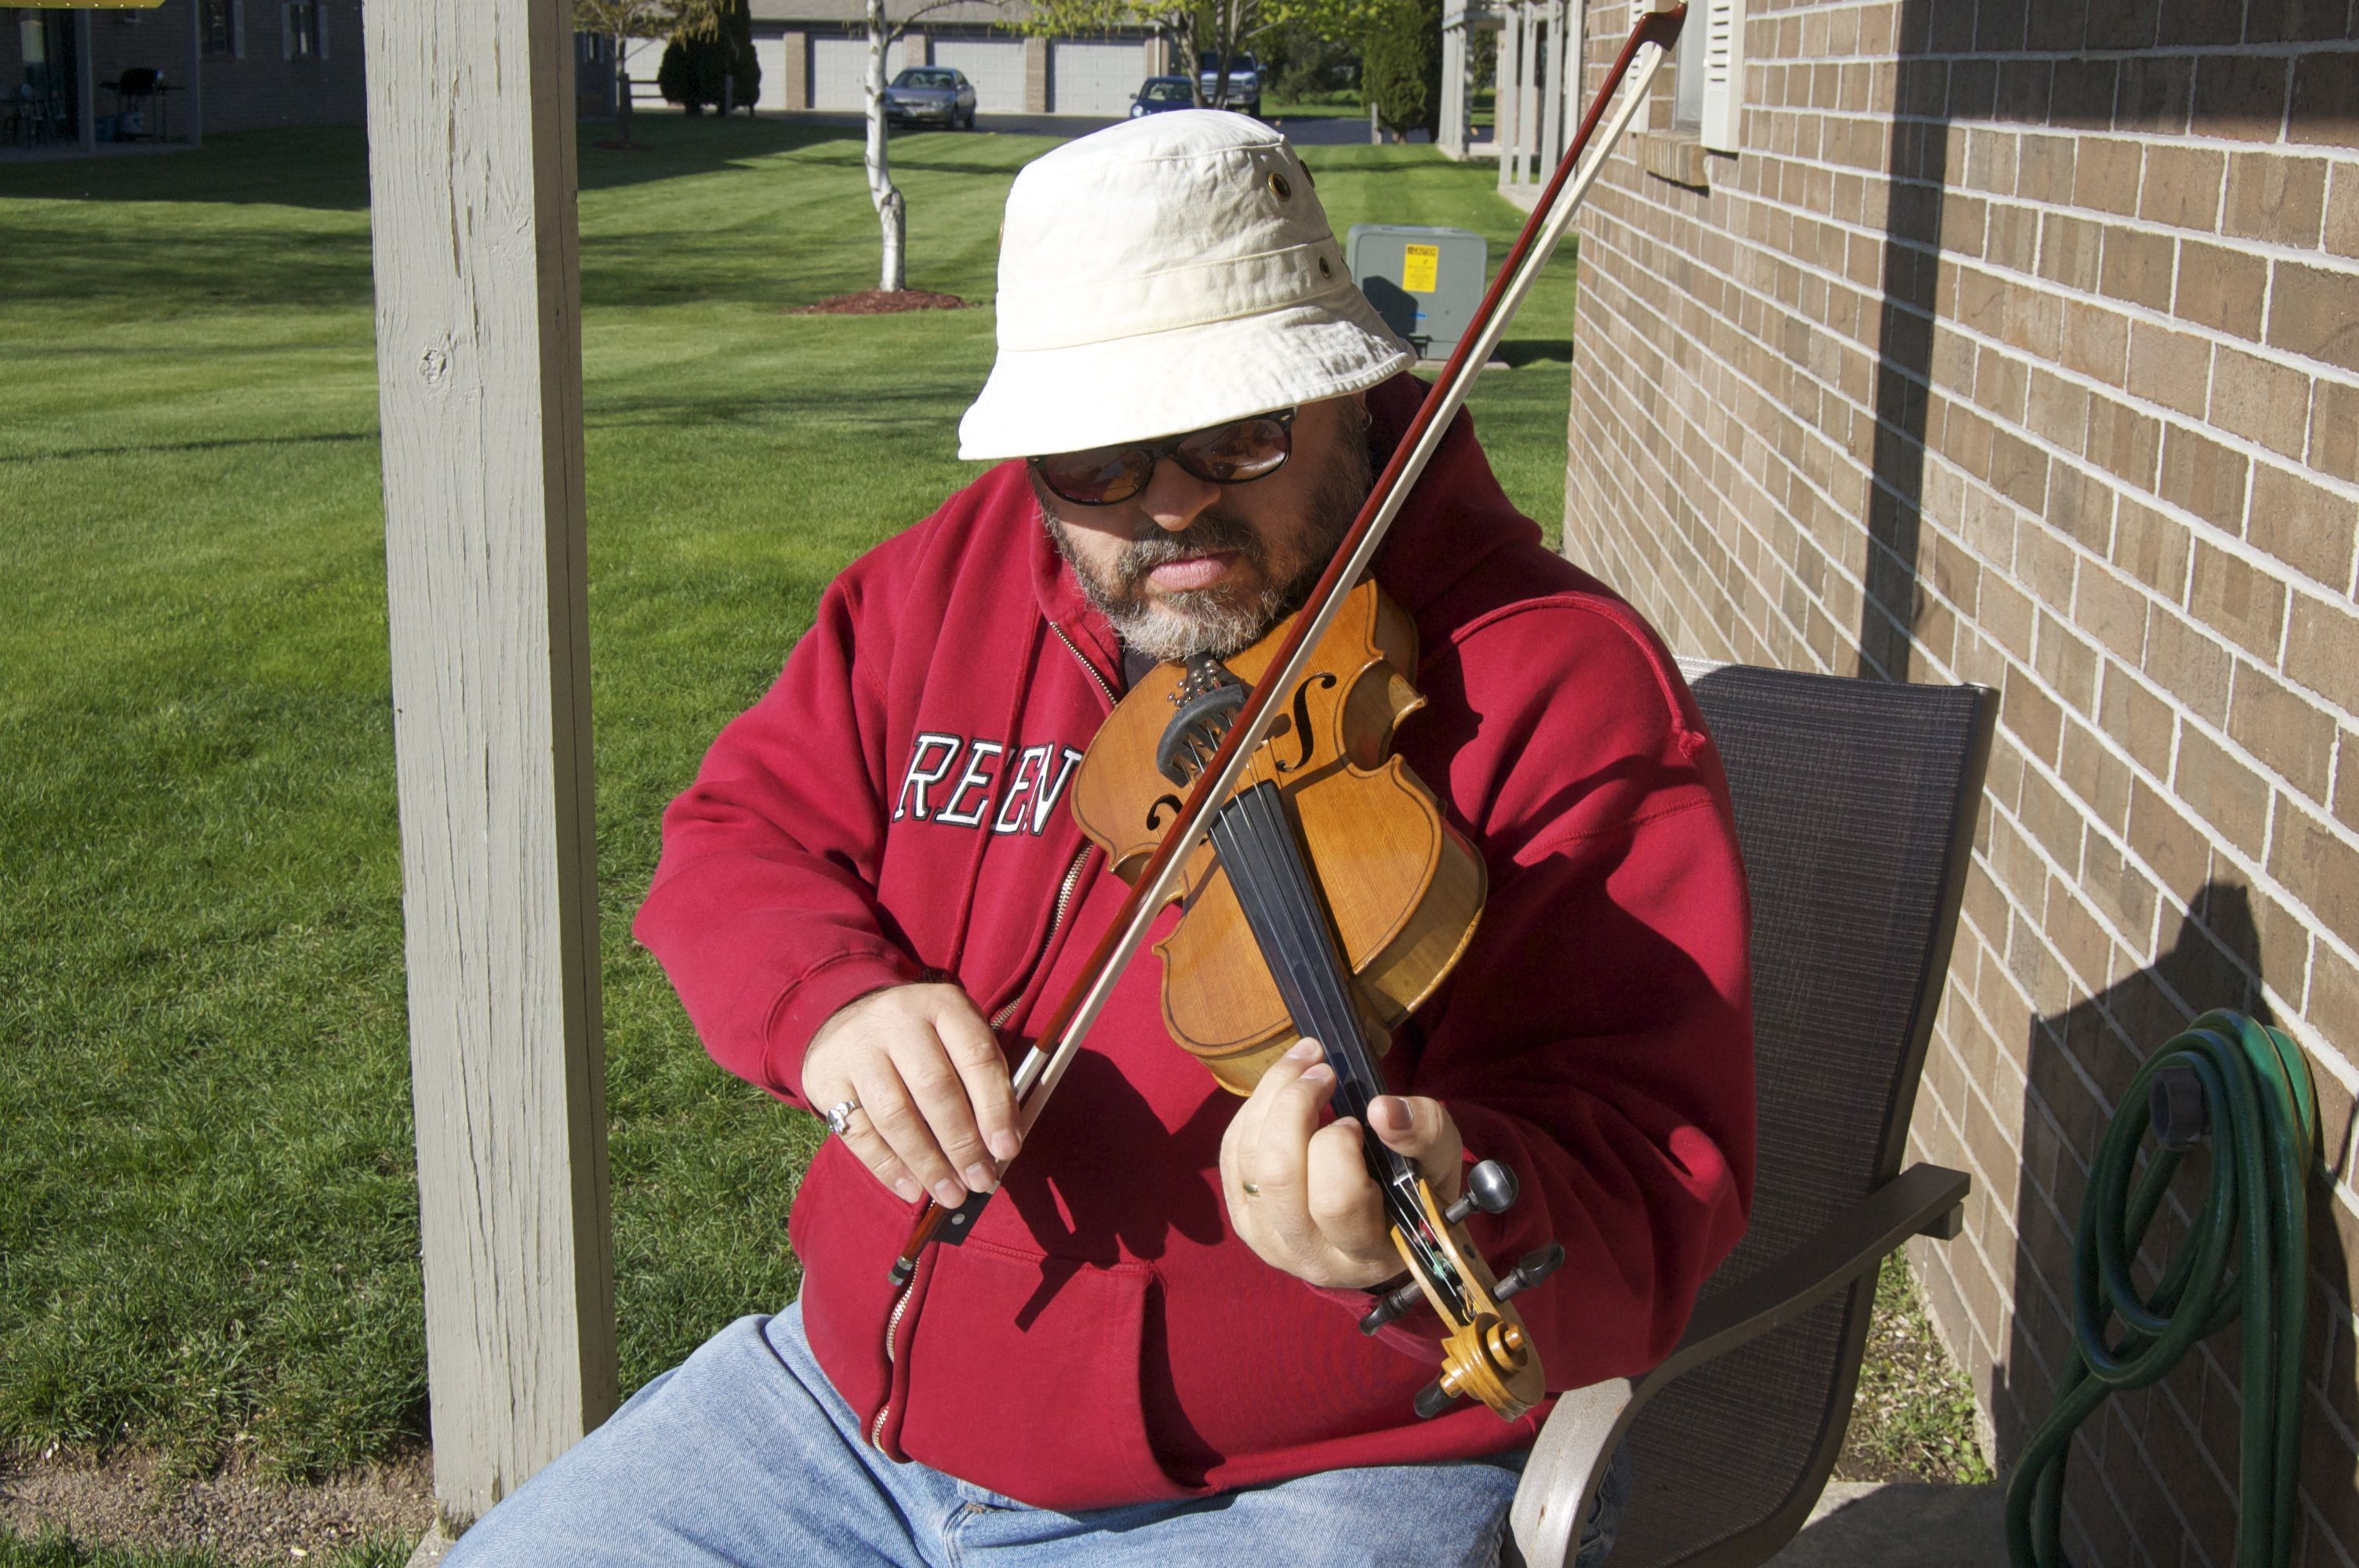 playing grandpa 39 s fiddle on the back porch music bluegrass music banjo music instruments. Black Bedroom Furniture Sets. Home Design Ideas